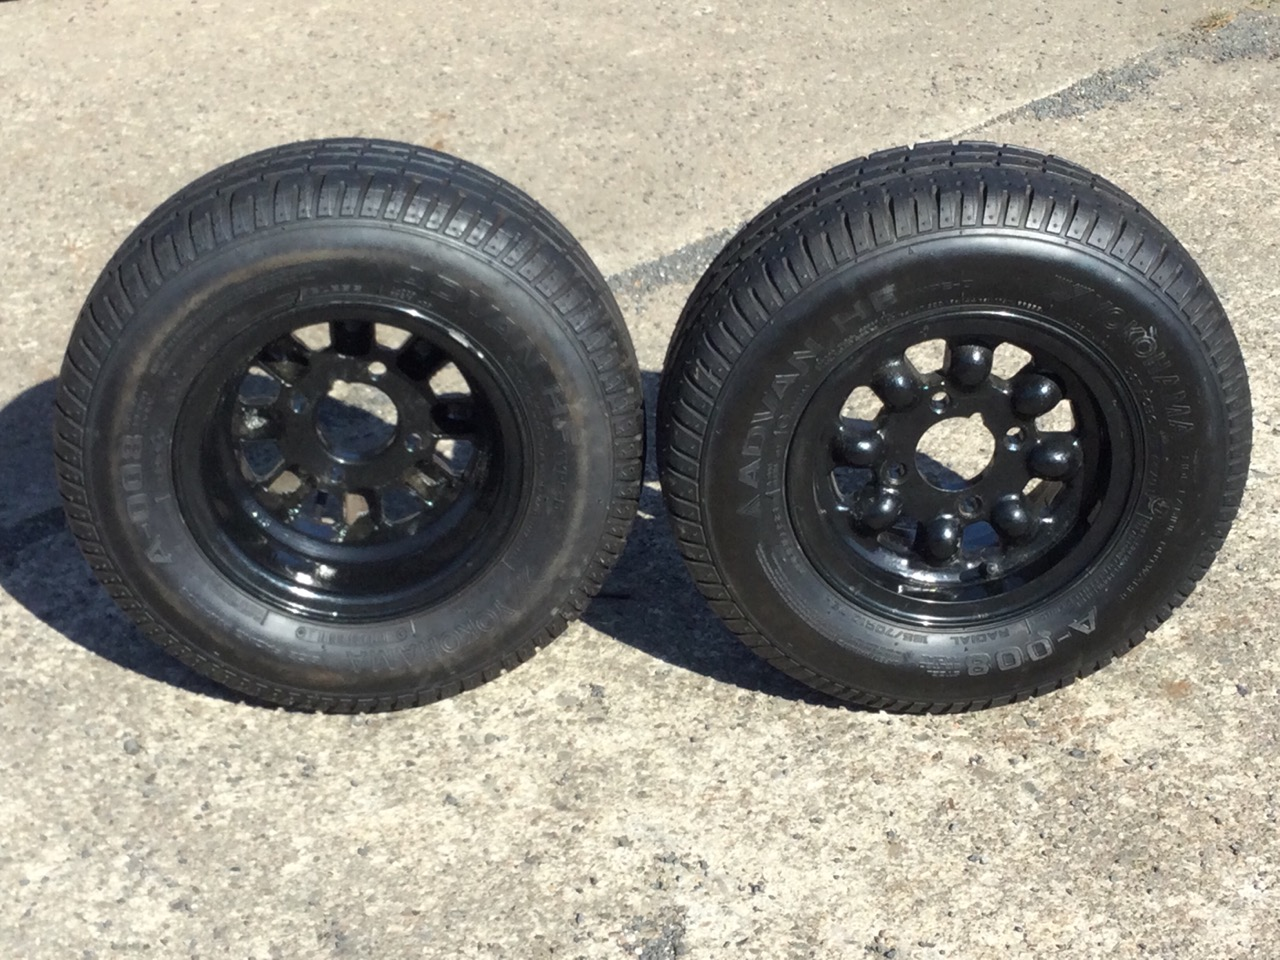 A pair of new 19in Mini Cooper wheels with Yokohama tyres. (2) - Image 2 of 3